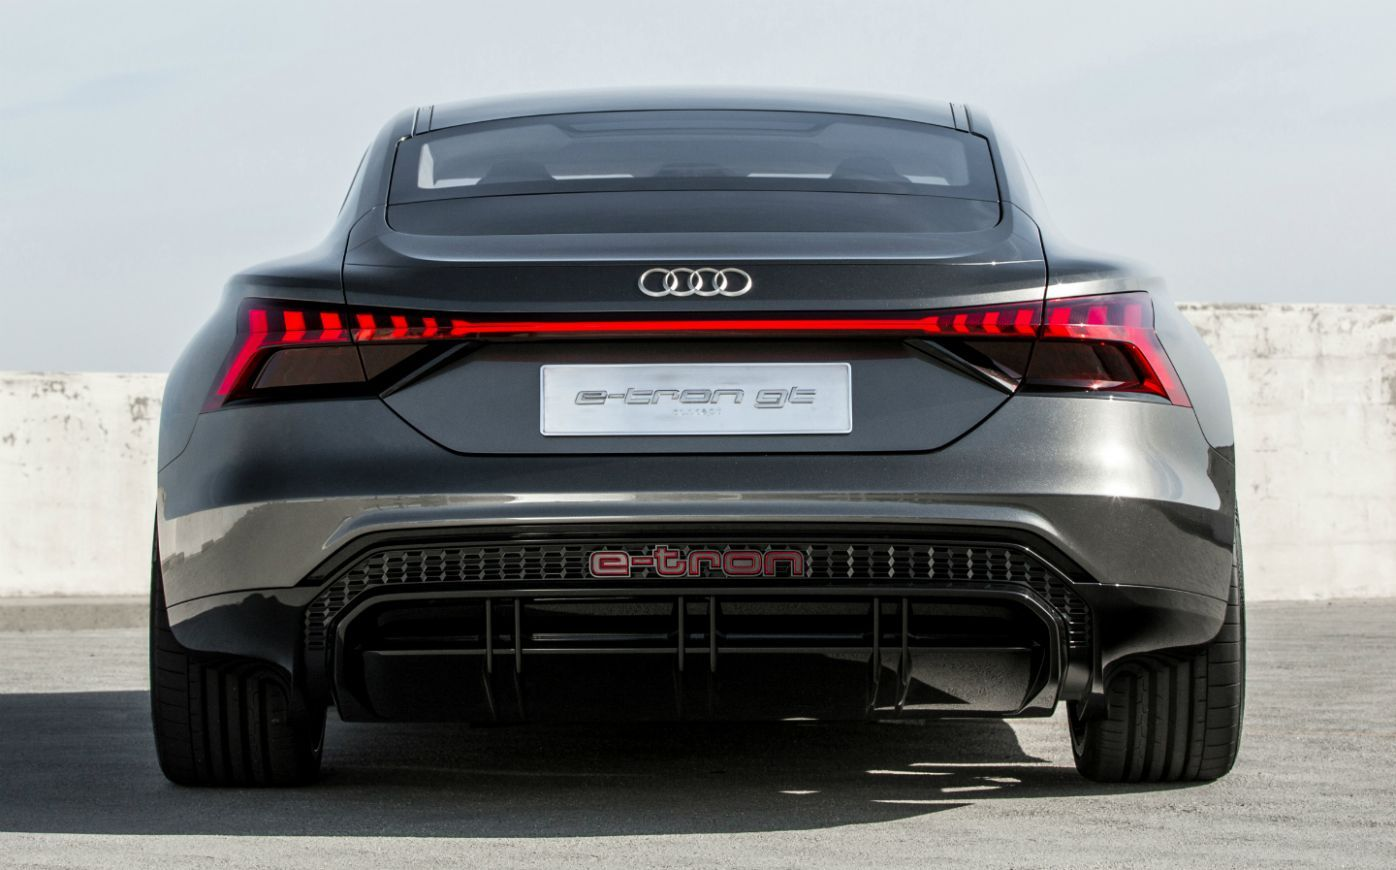 Audi Gt Coupe 2020 Price Design And Review Di 2020